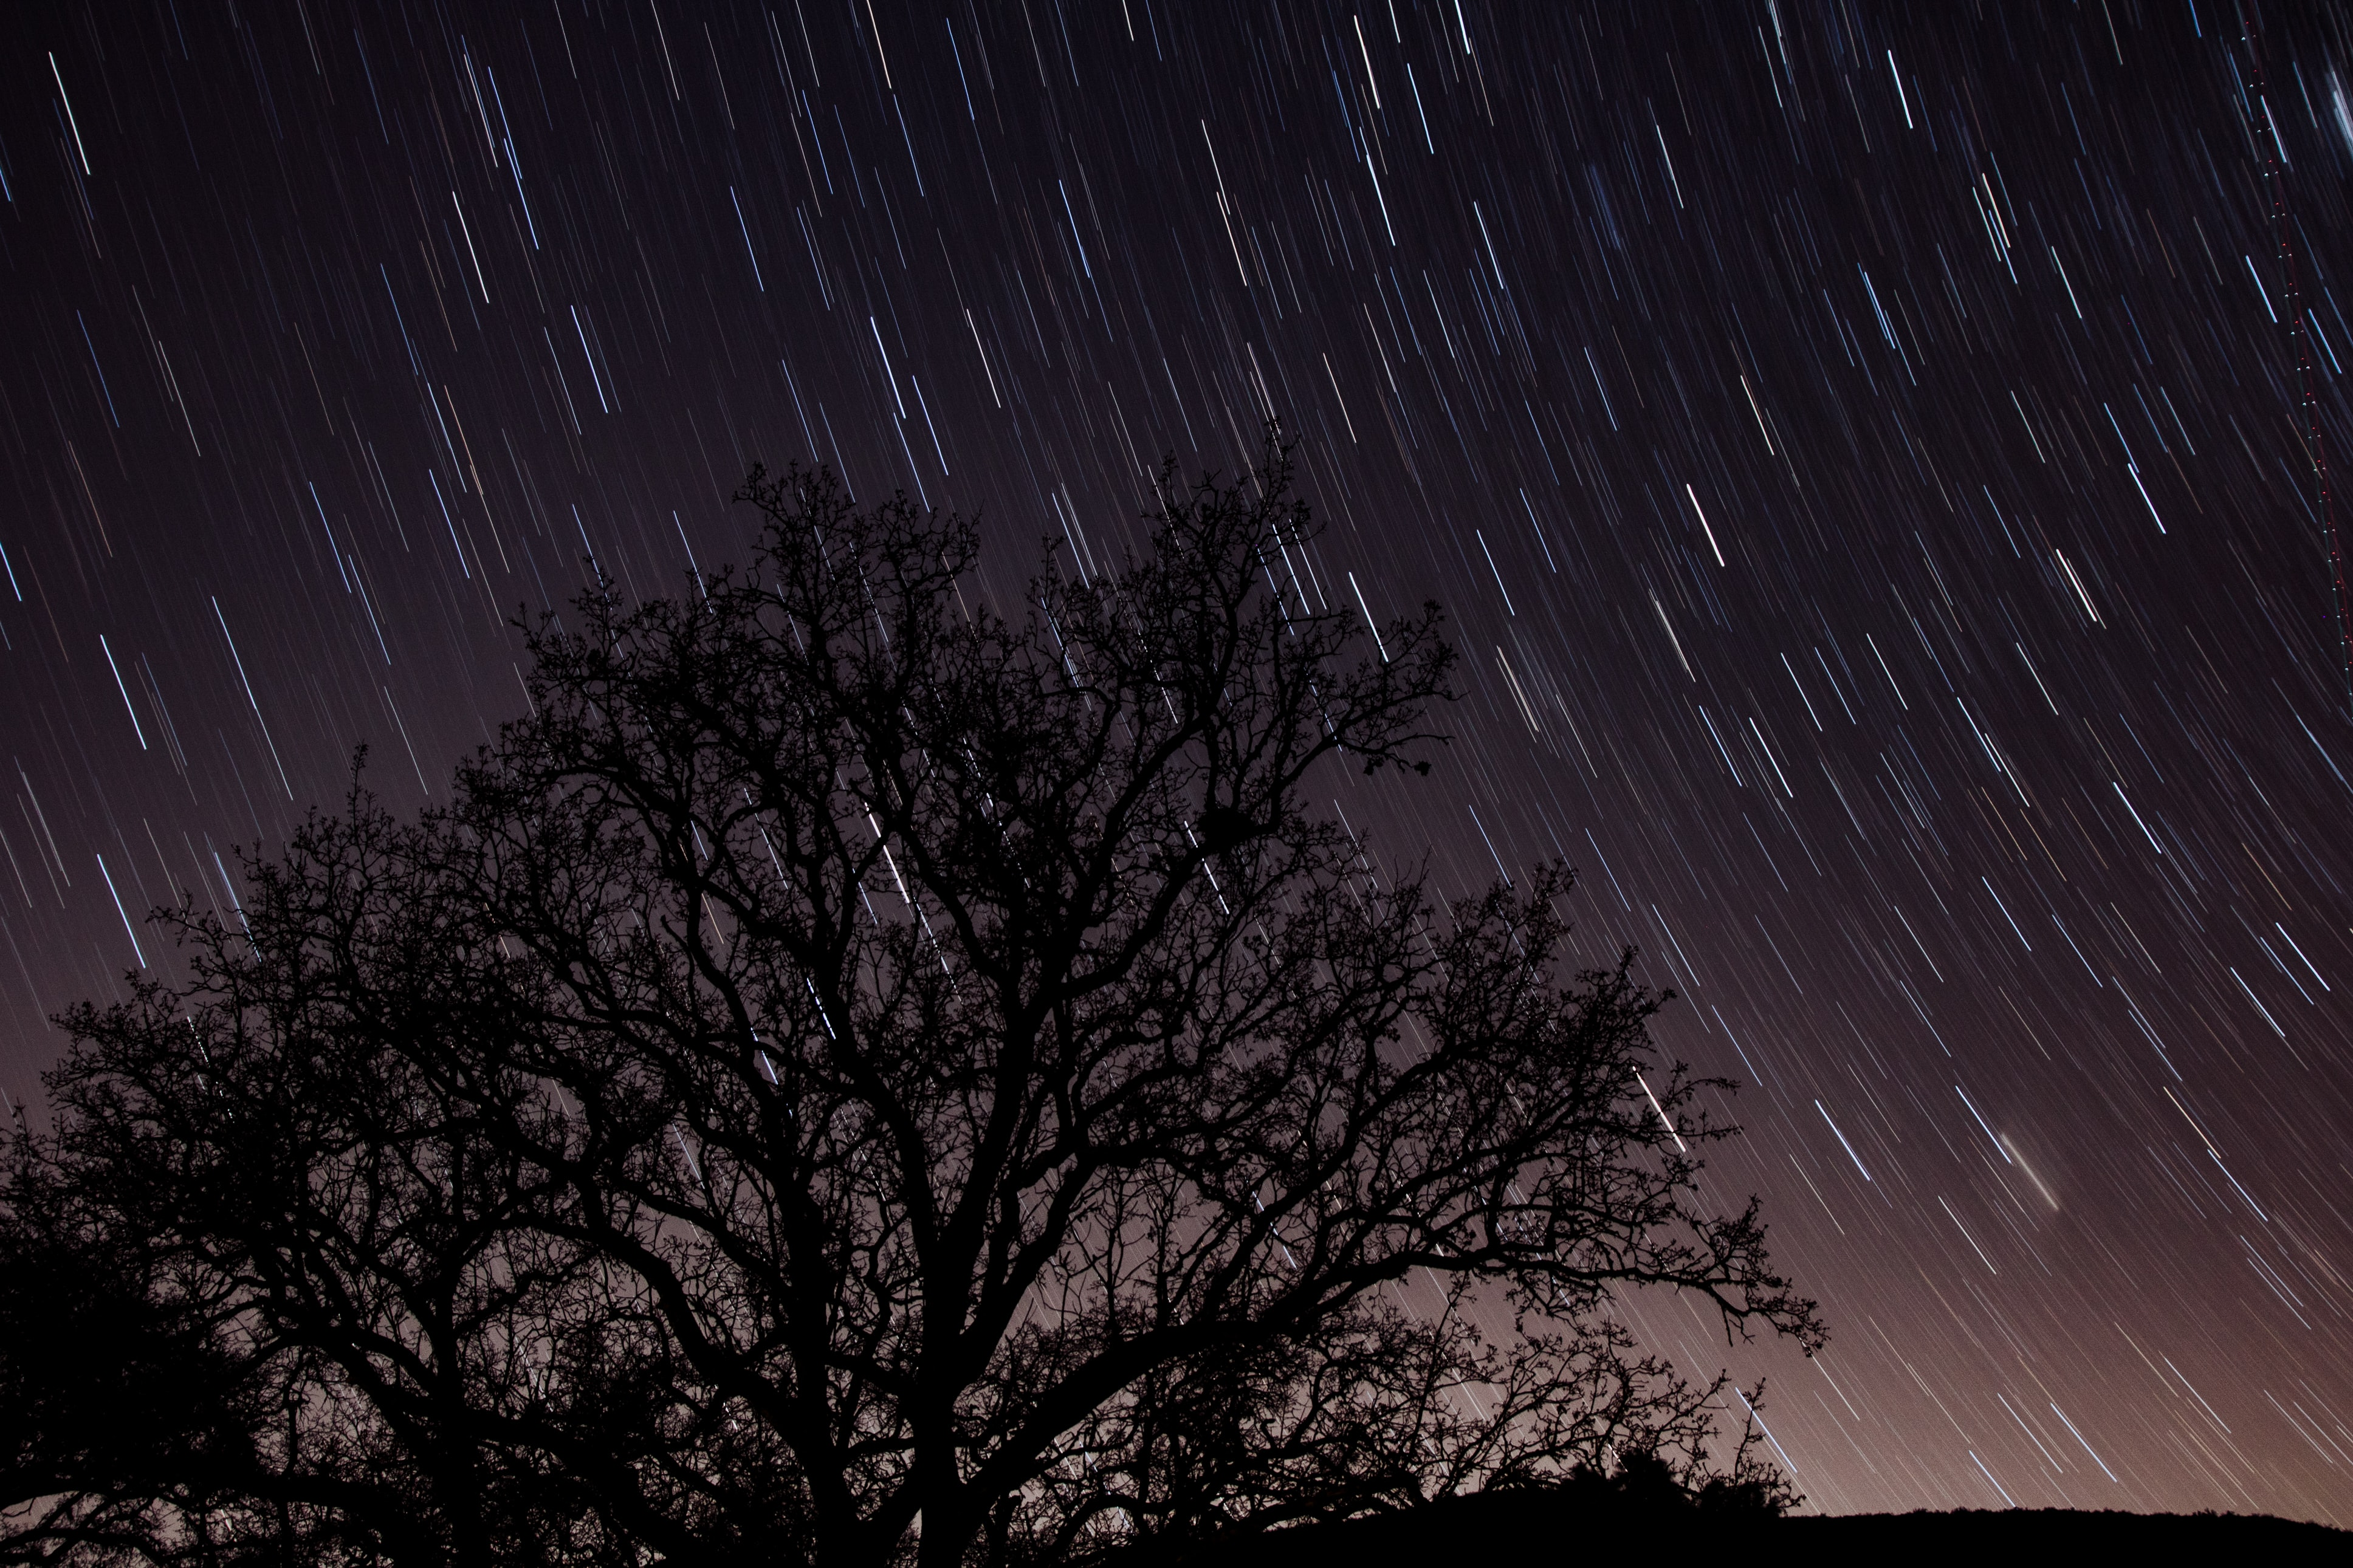 silhouette of trees raining in time lapse photography